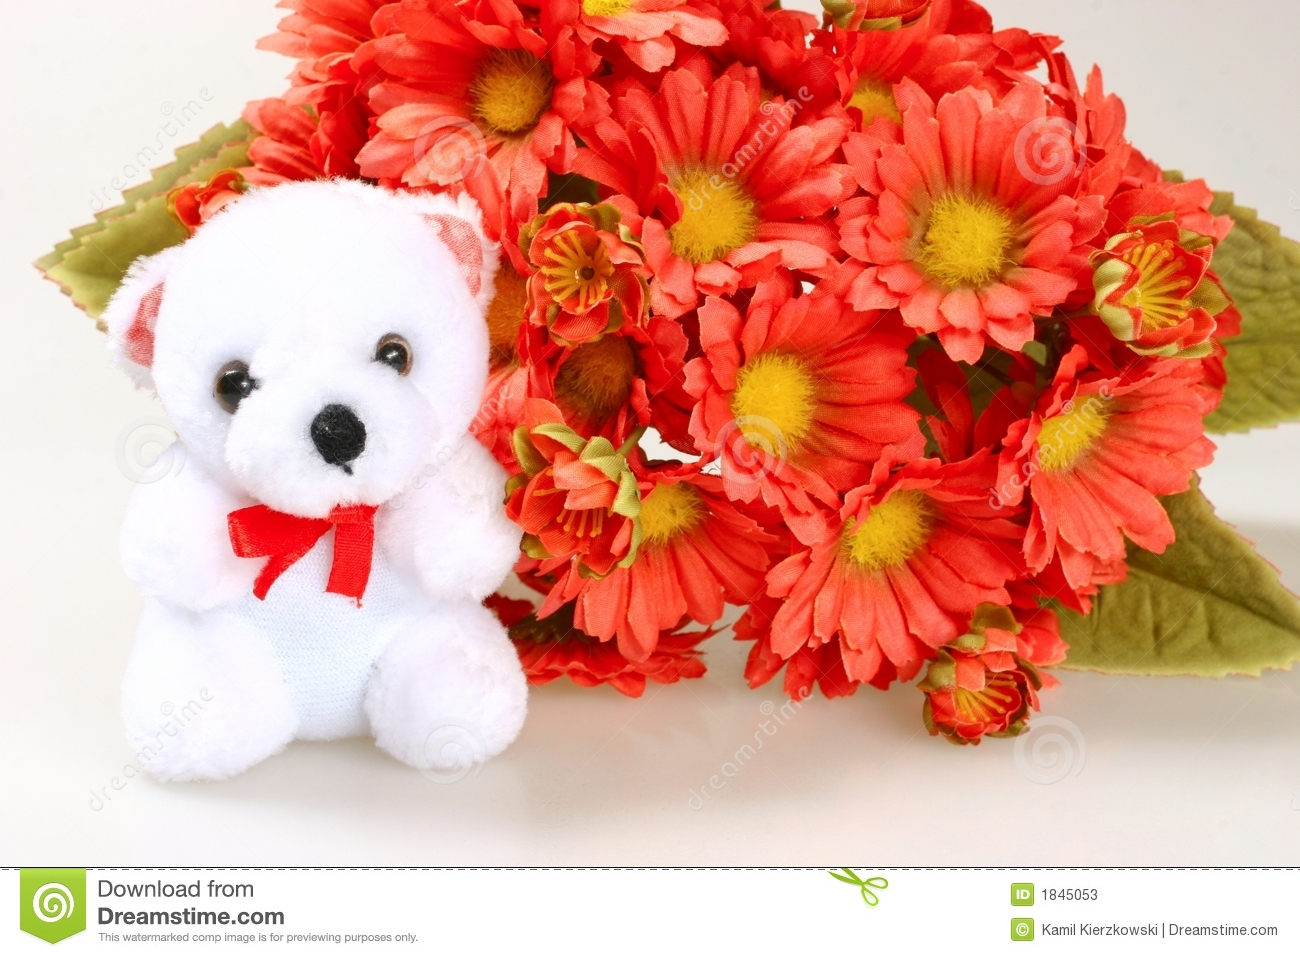 Teddy Bear With Flowers Stock Image. Image Of Present